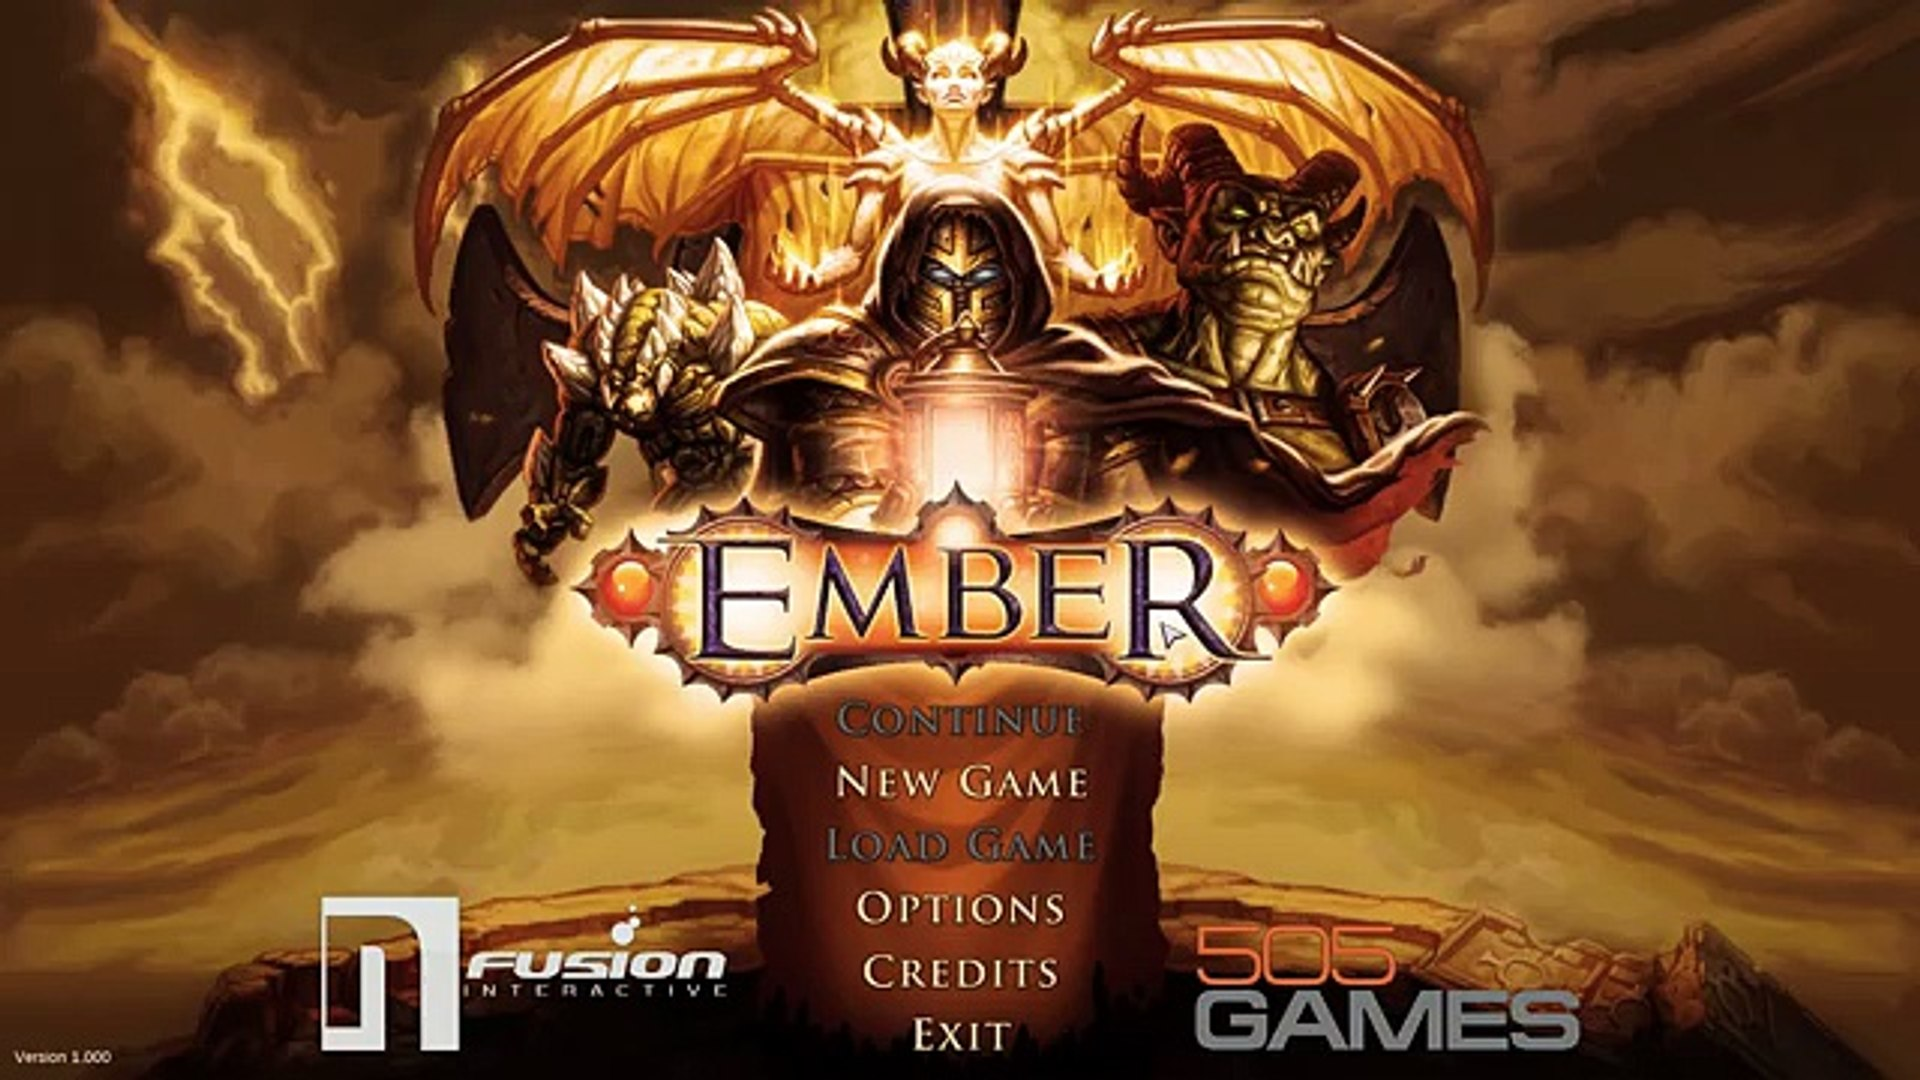 Ember Review Buy, Wait for Sale, Rent, Never Touch?